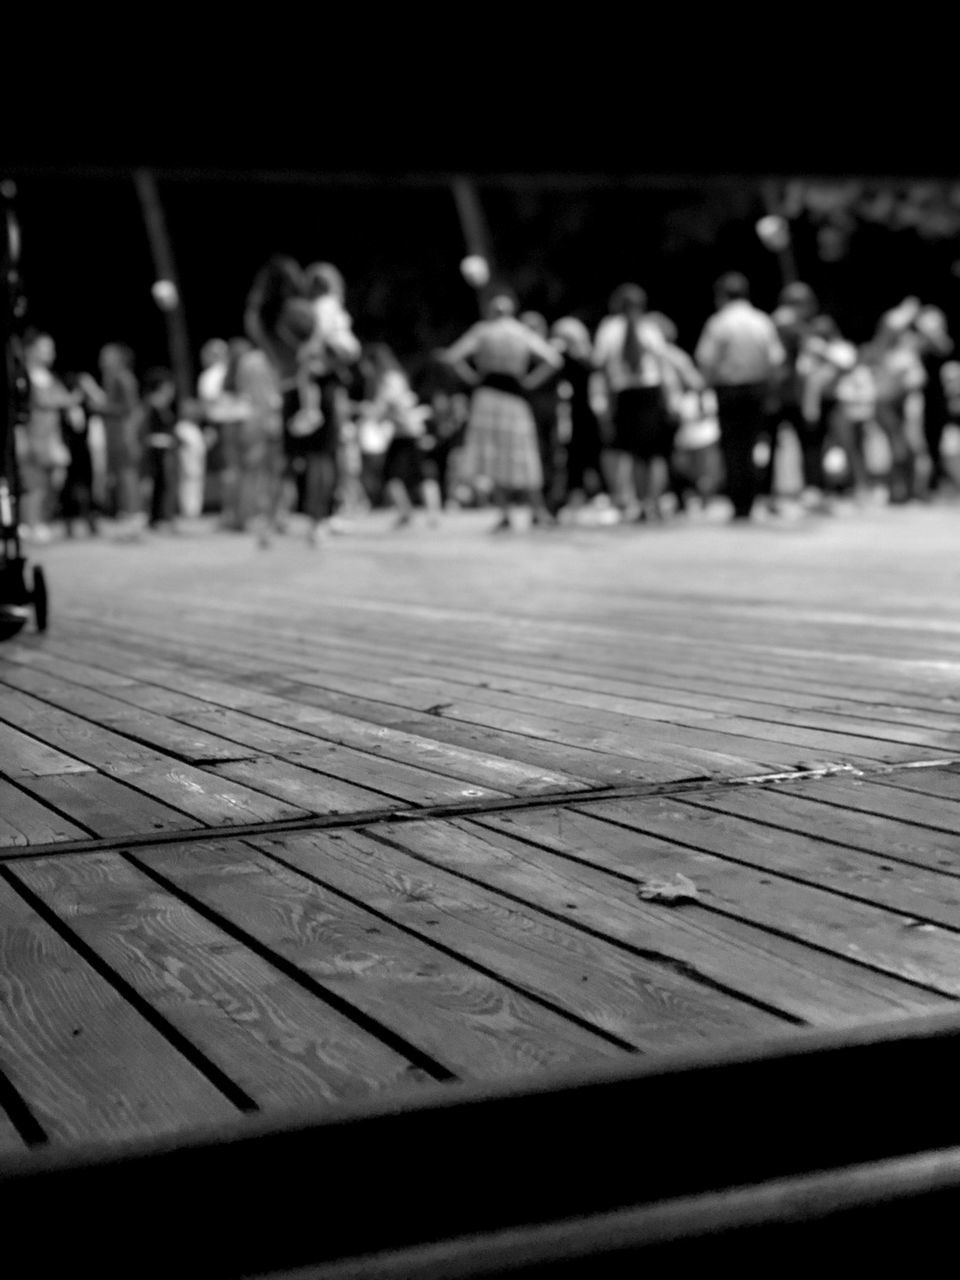 CLOSE-UP OF GROUP OF PEOPLE ON WOODEN SURFACE